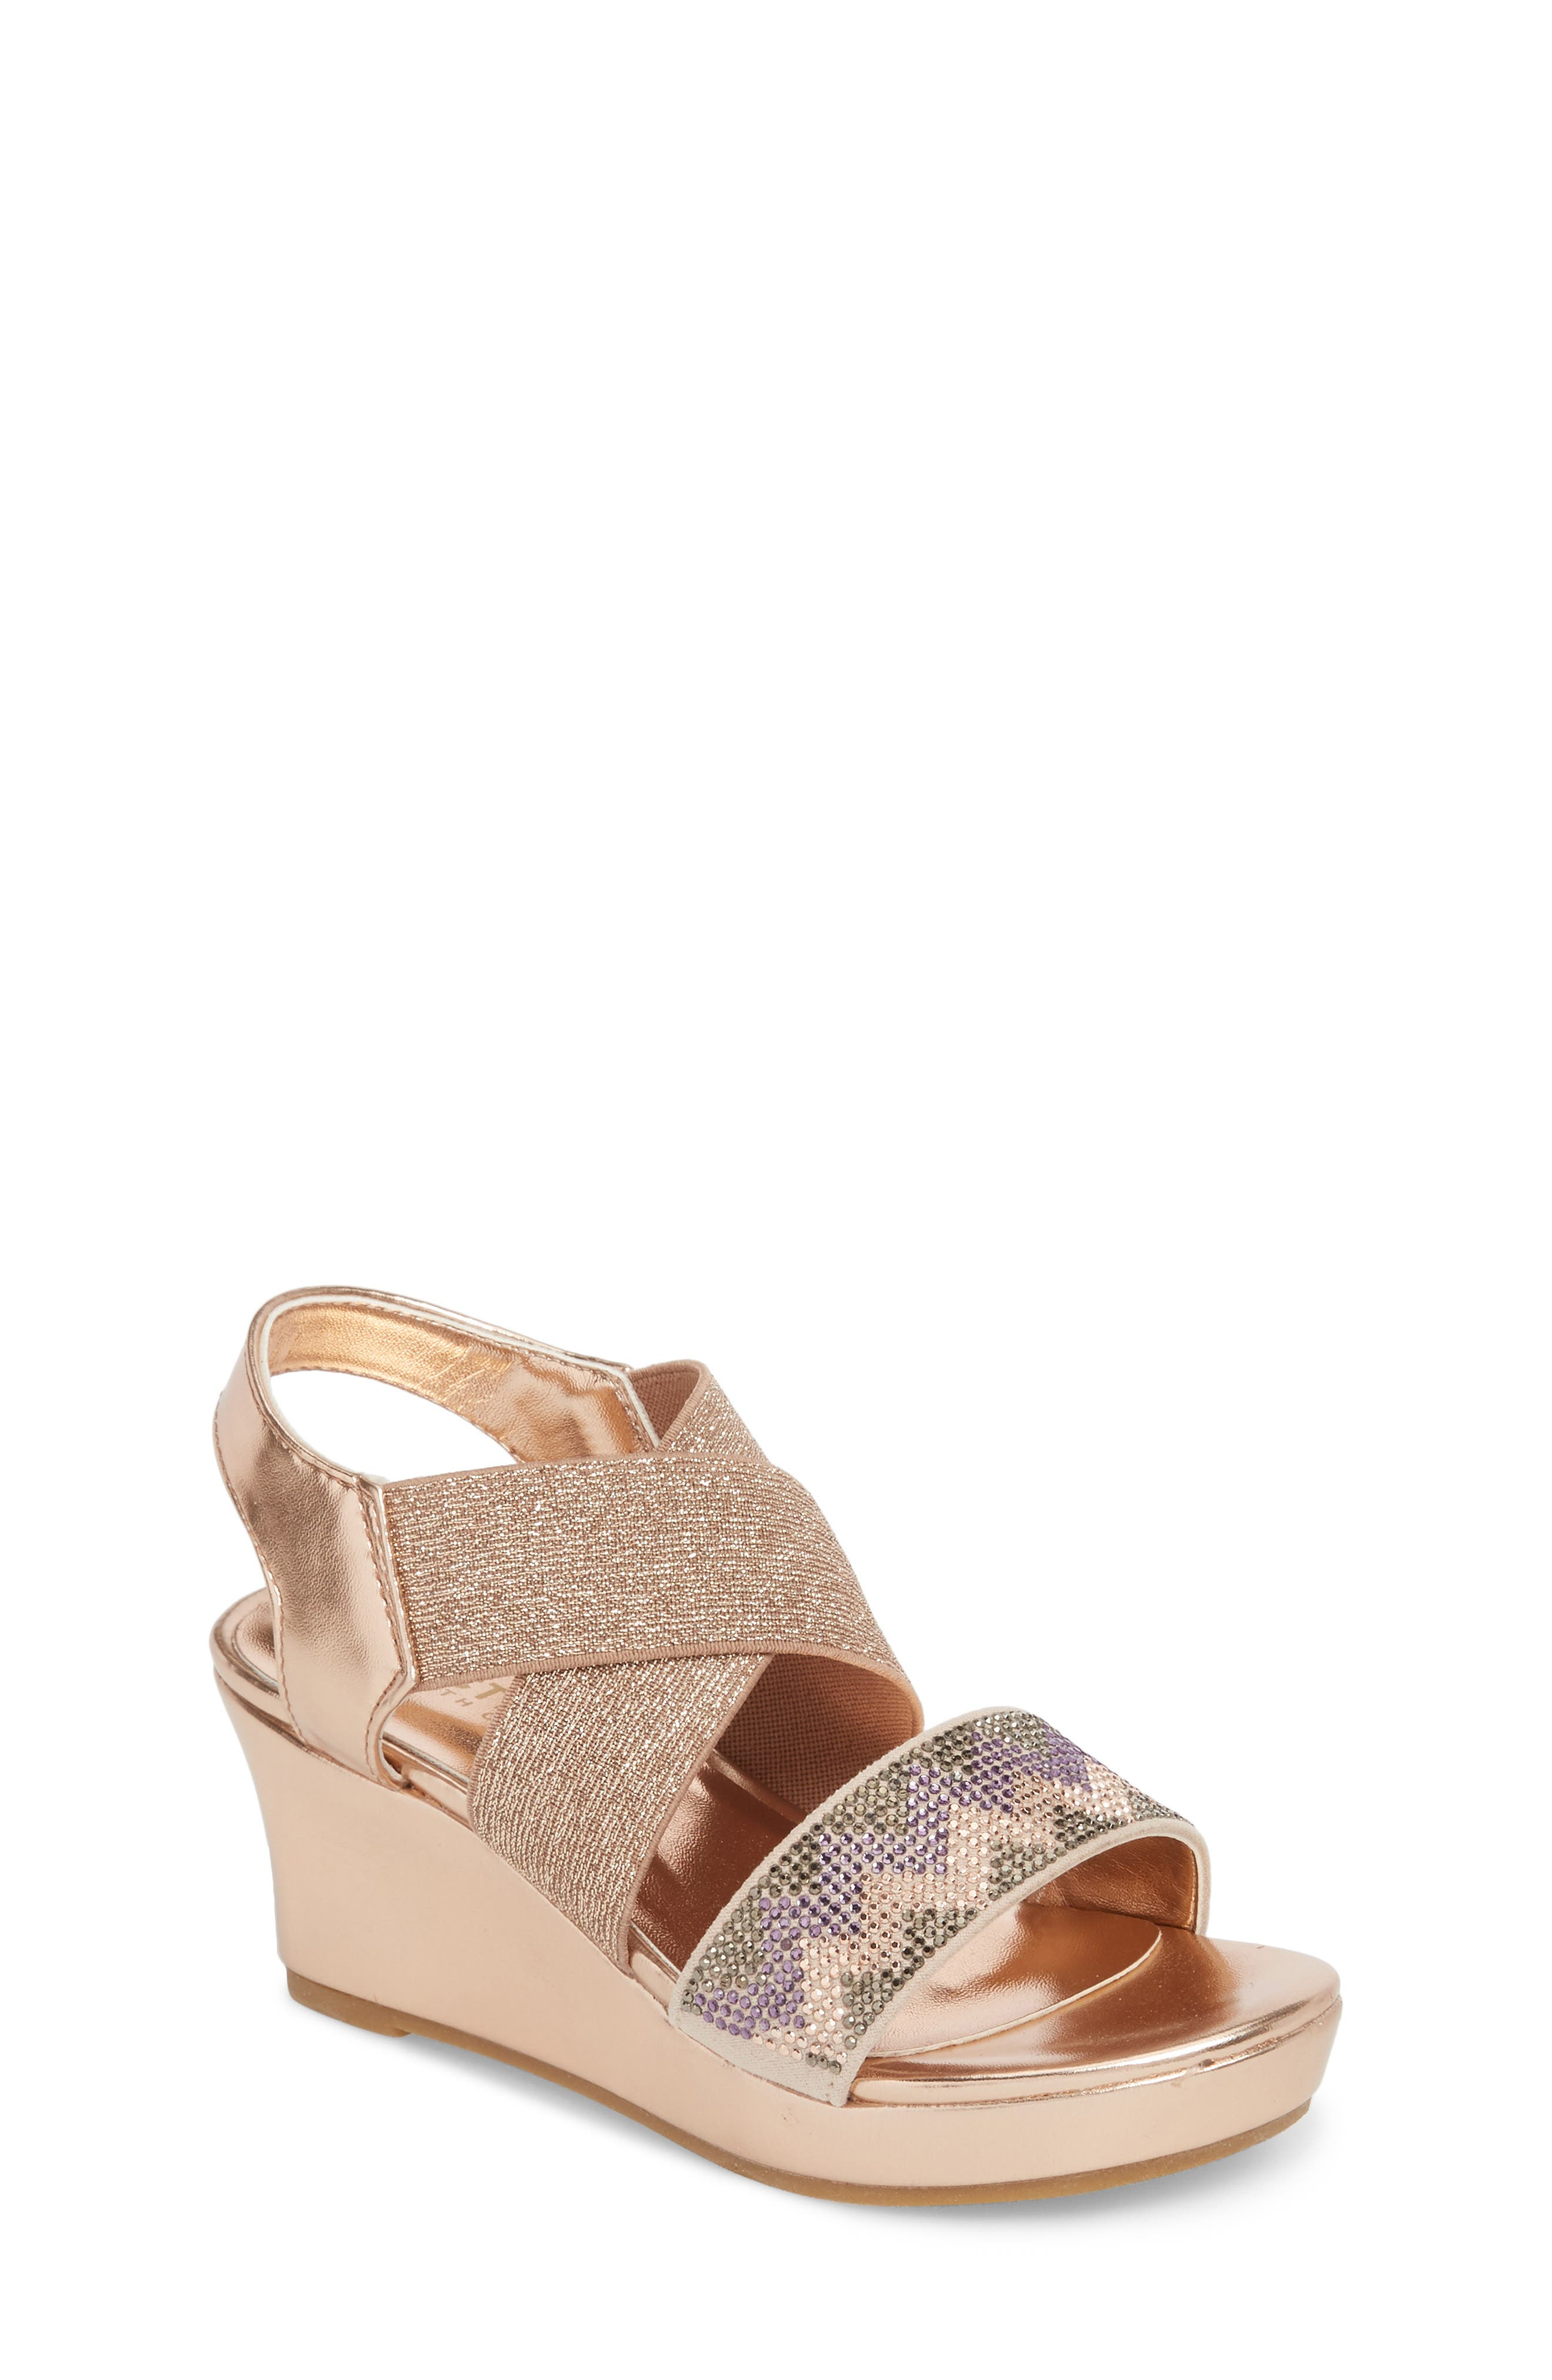 Reaction Kenneth Cole Reed Mamba Embellished Wedge Sandal,                             Main thumbnail 1, color,                             220